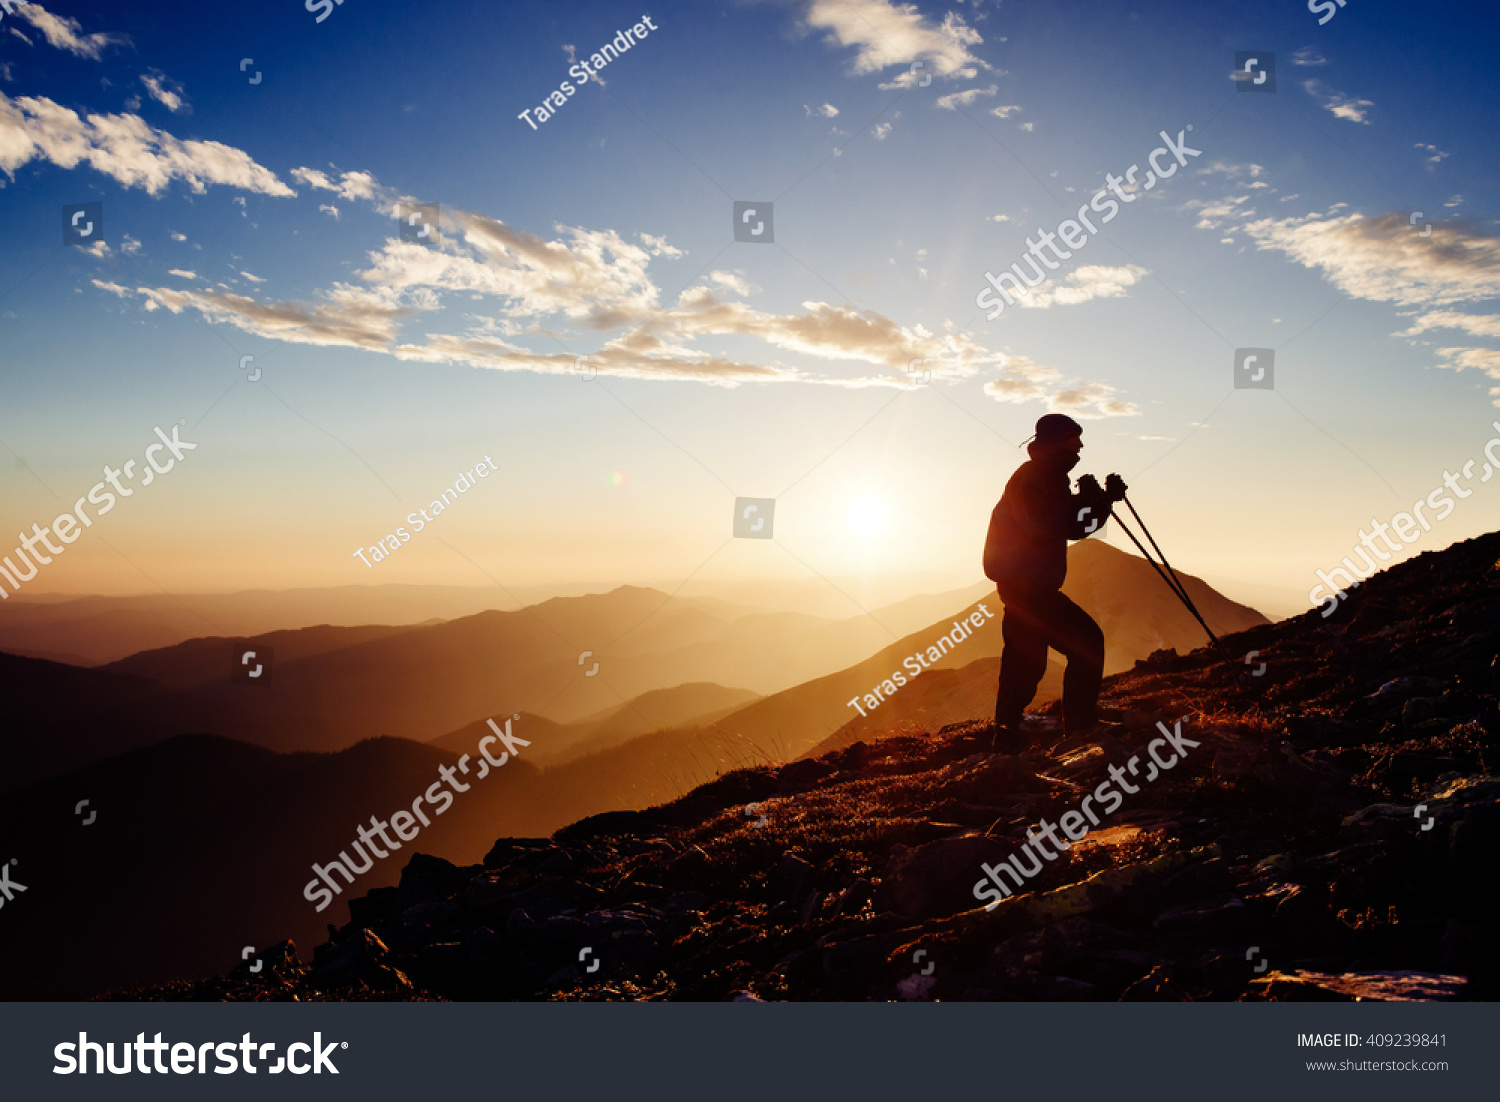 Tourist Travels Peak Mountain Rock Sunny Stock Photo - This man hikes up the transylvanian mountains every morning to photograph sunrise